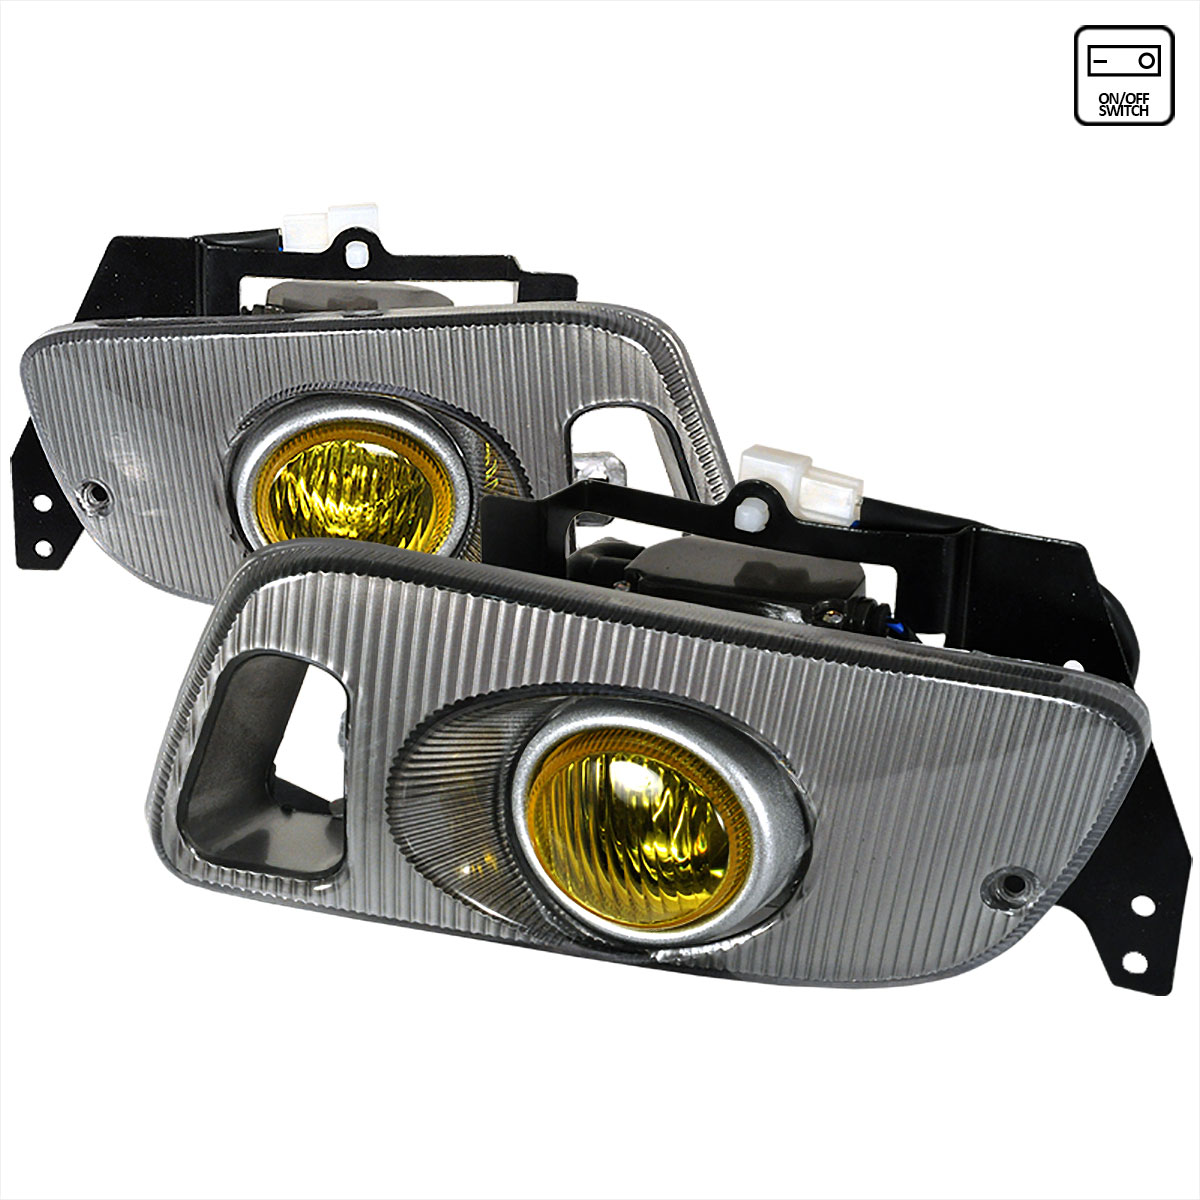 Spec-D Tuning LF-CV923AMOEM - Spec-D 92-95 Honda Civic Oem Fog Lights Yellow